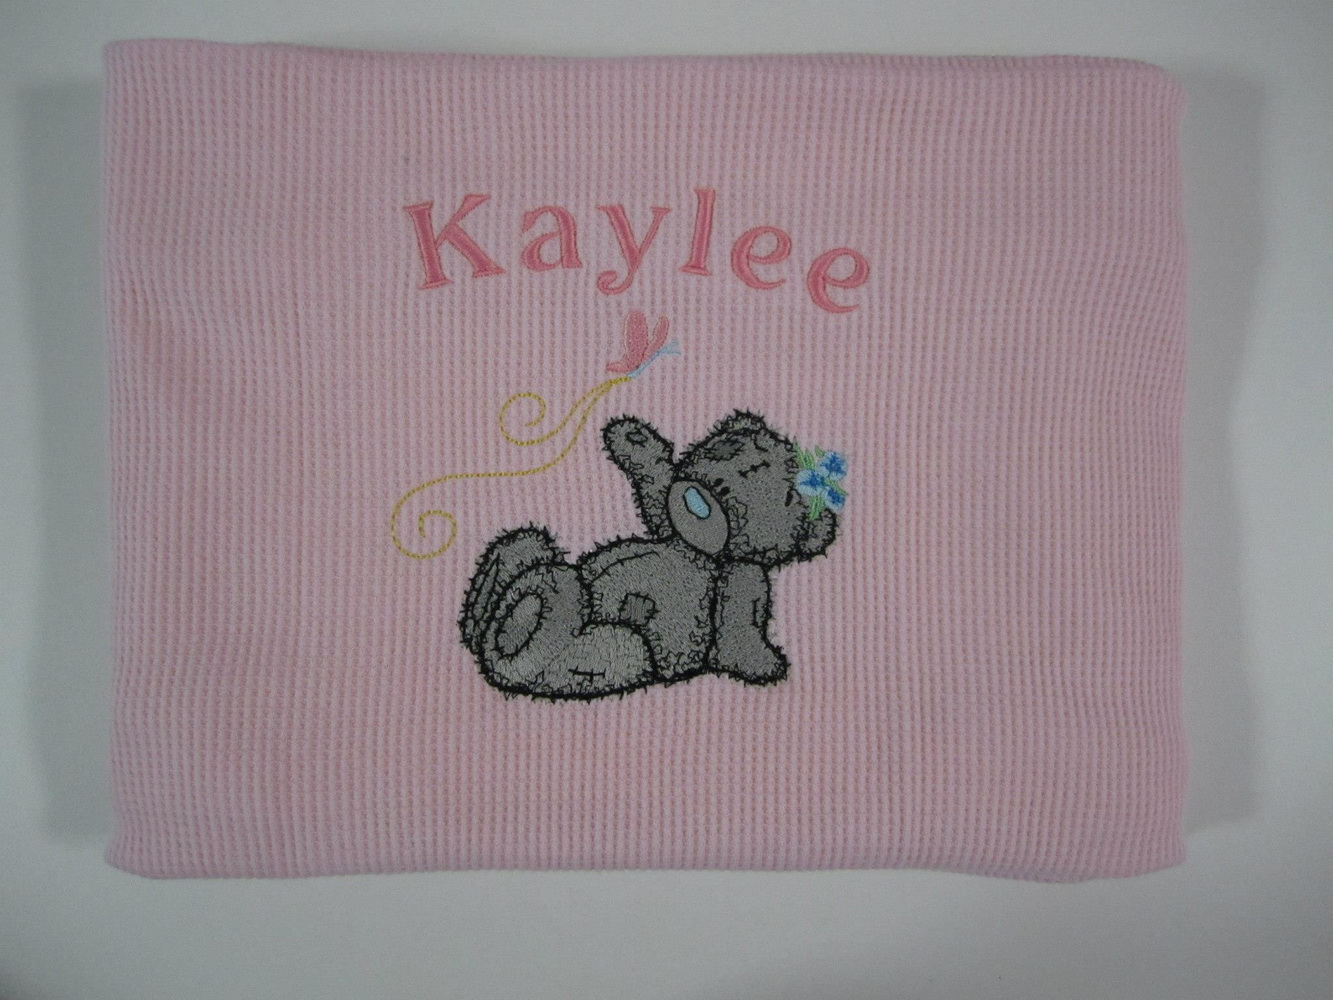 Teddy bear good flight my friend design on towel embroidered